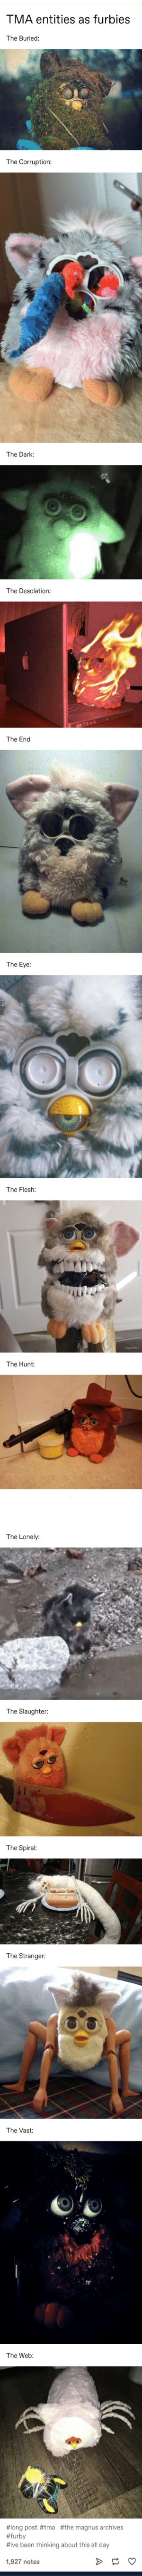 Furbies in their natural state: Furbies in their natural state